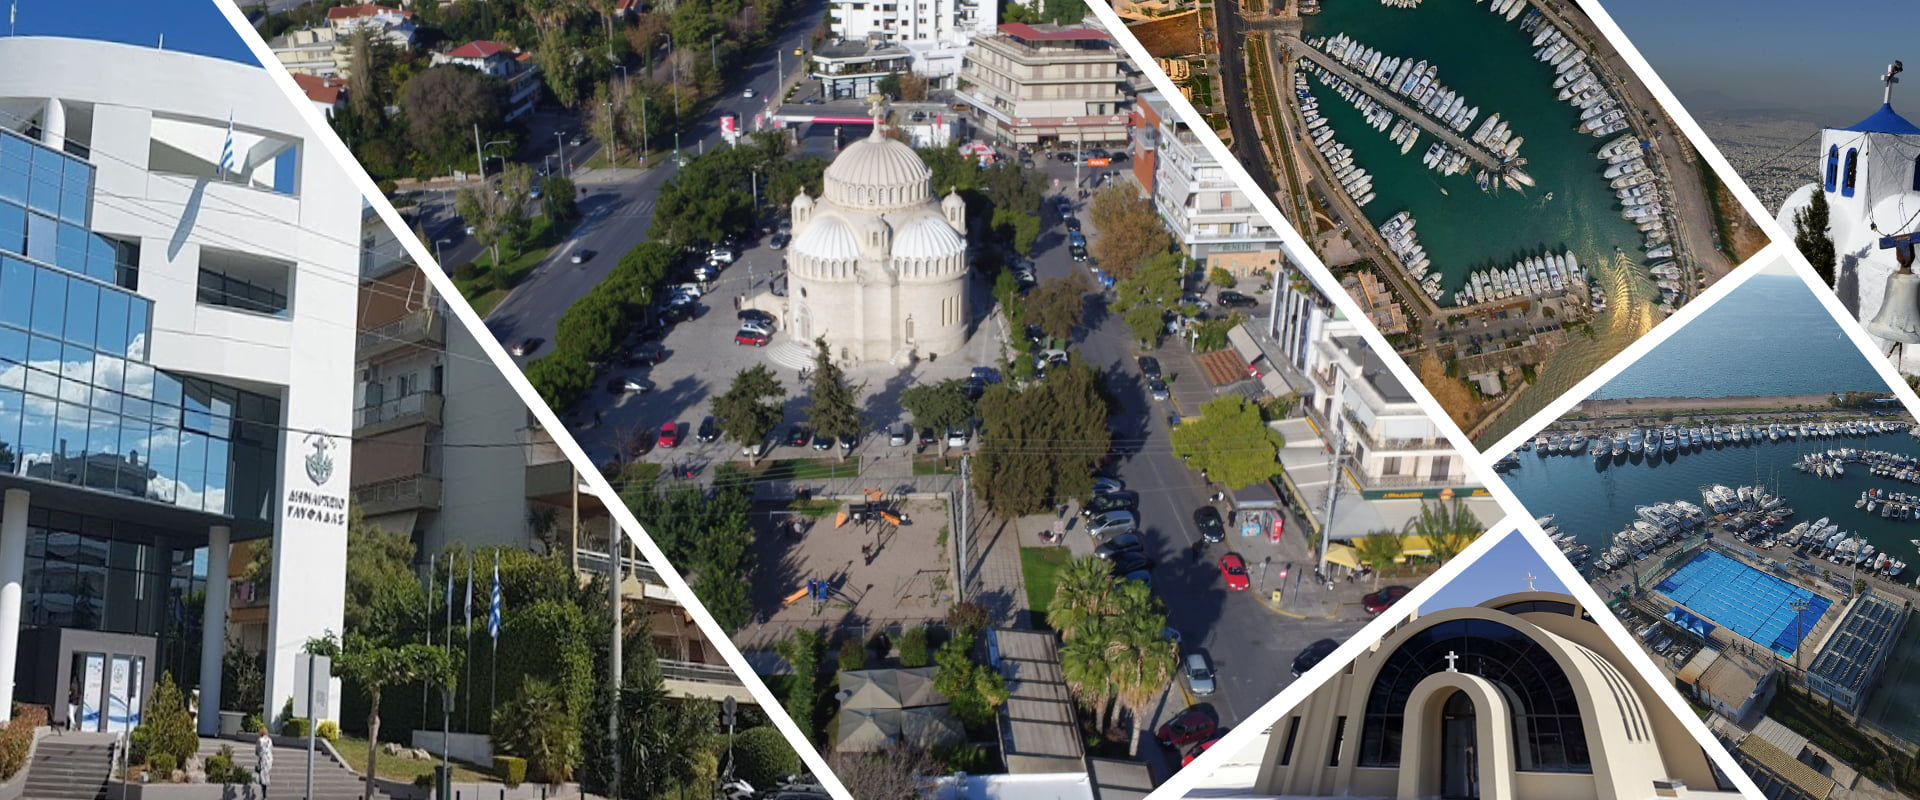 Athens Airport (ATH) transfer to/from Glyfada with Minivan, glyfada, athens to glyfada transfer